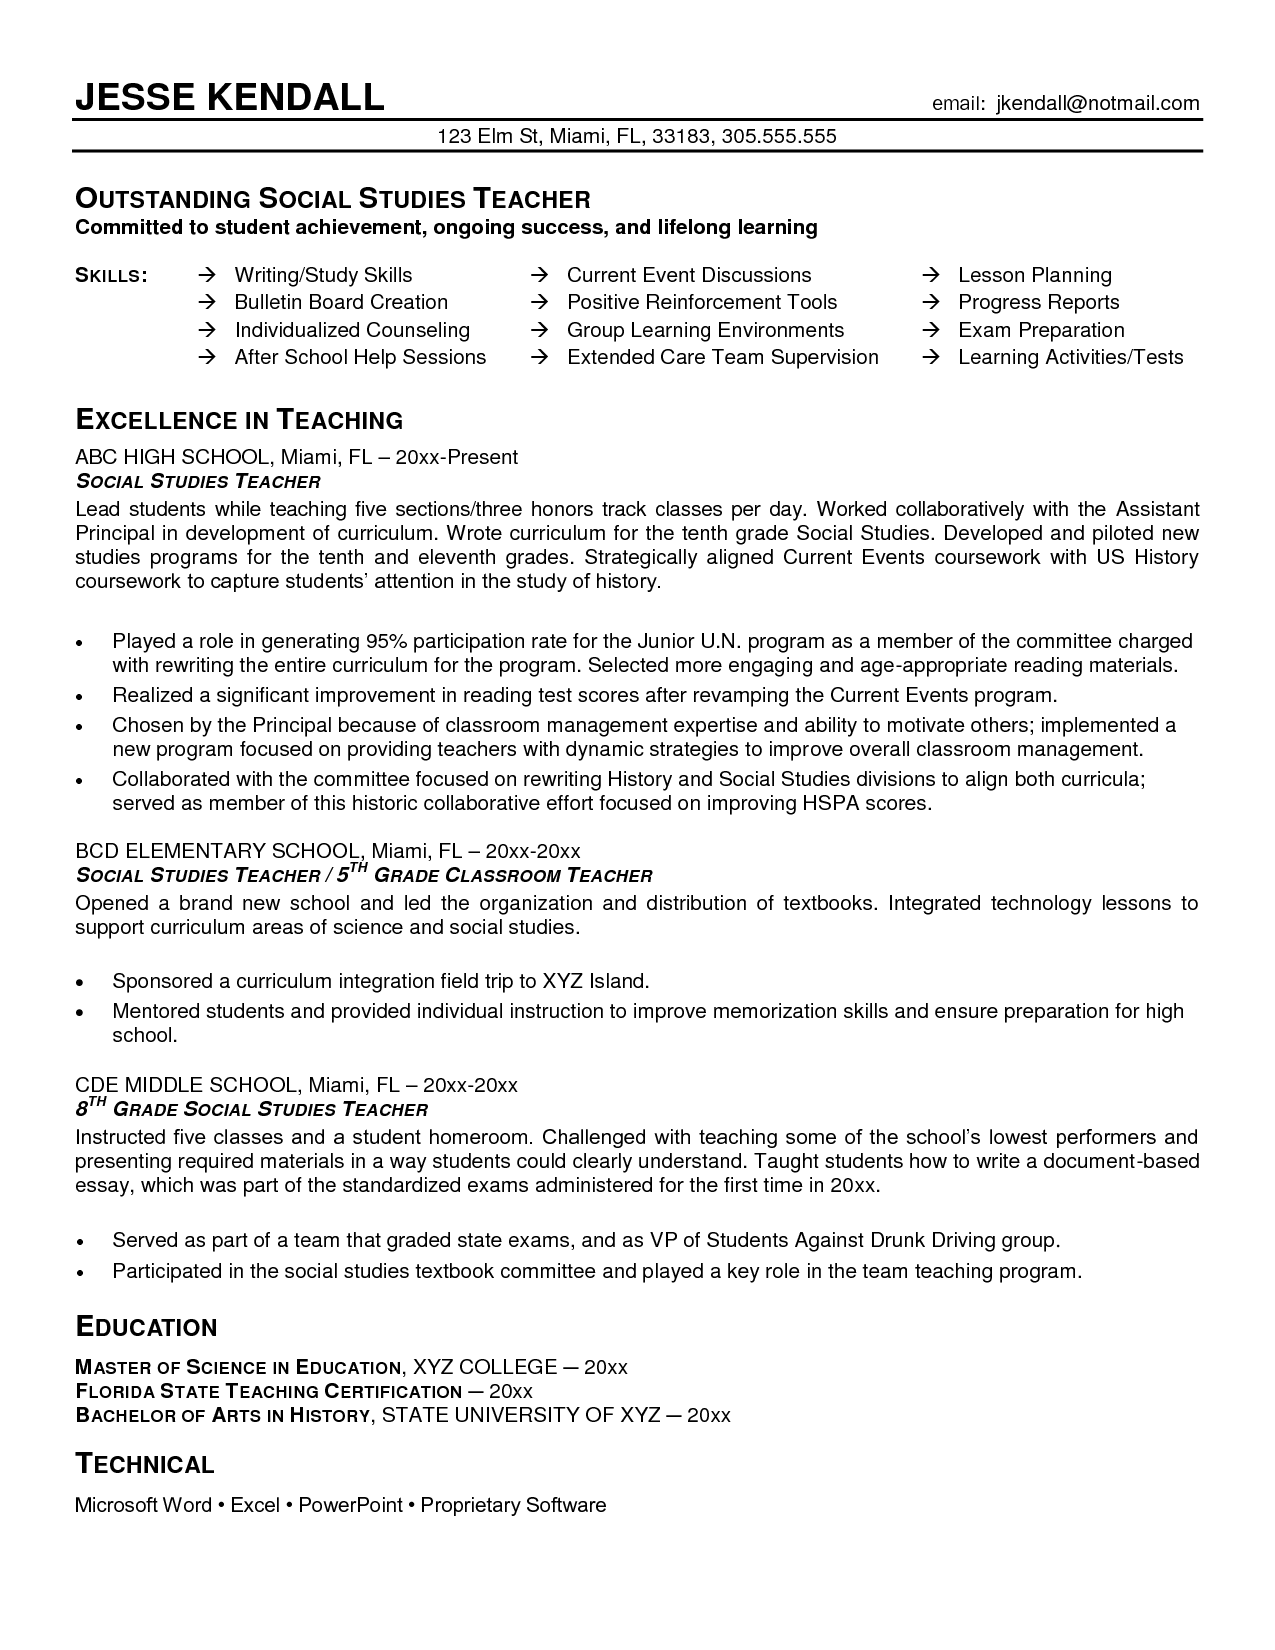 Skills For A High School Student Resume History Teacher Sample Resume Google Search Work